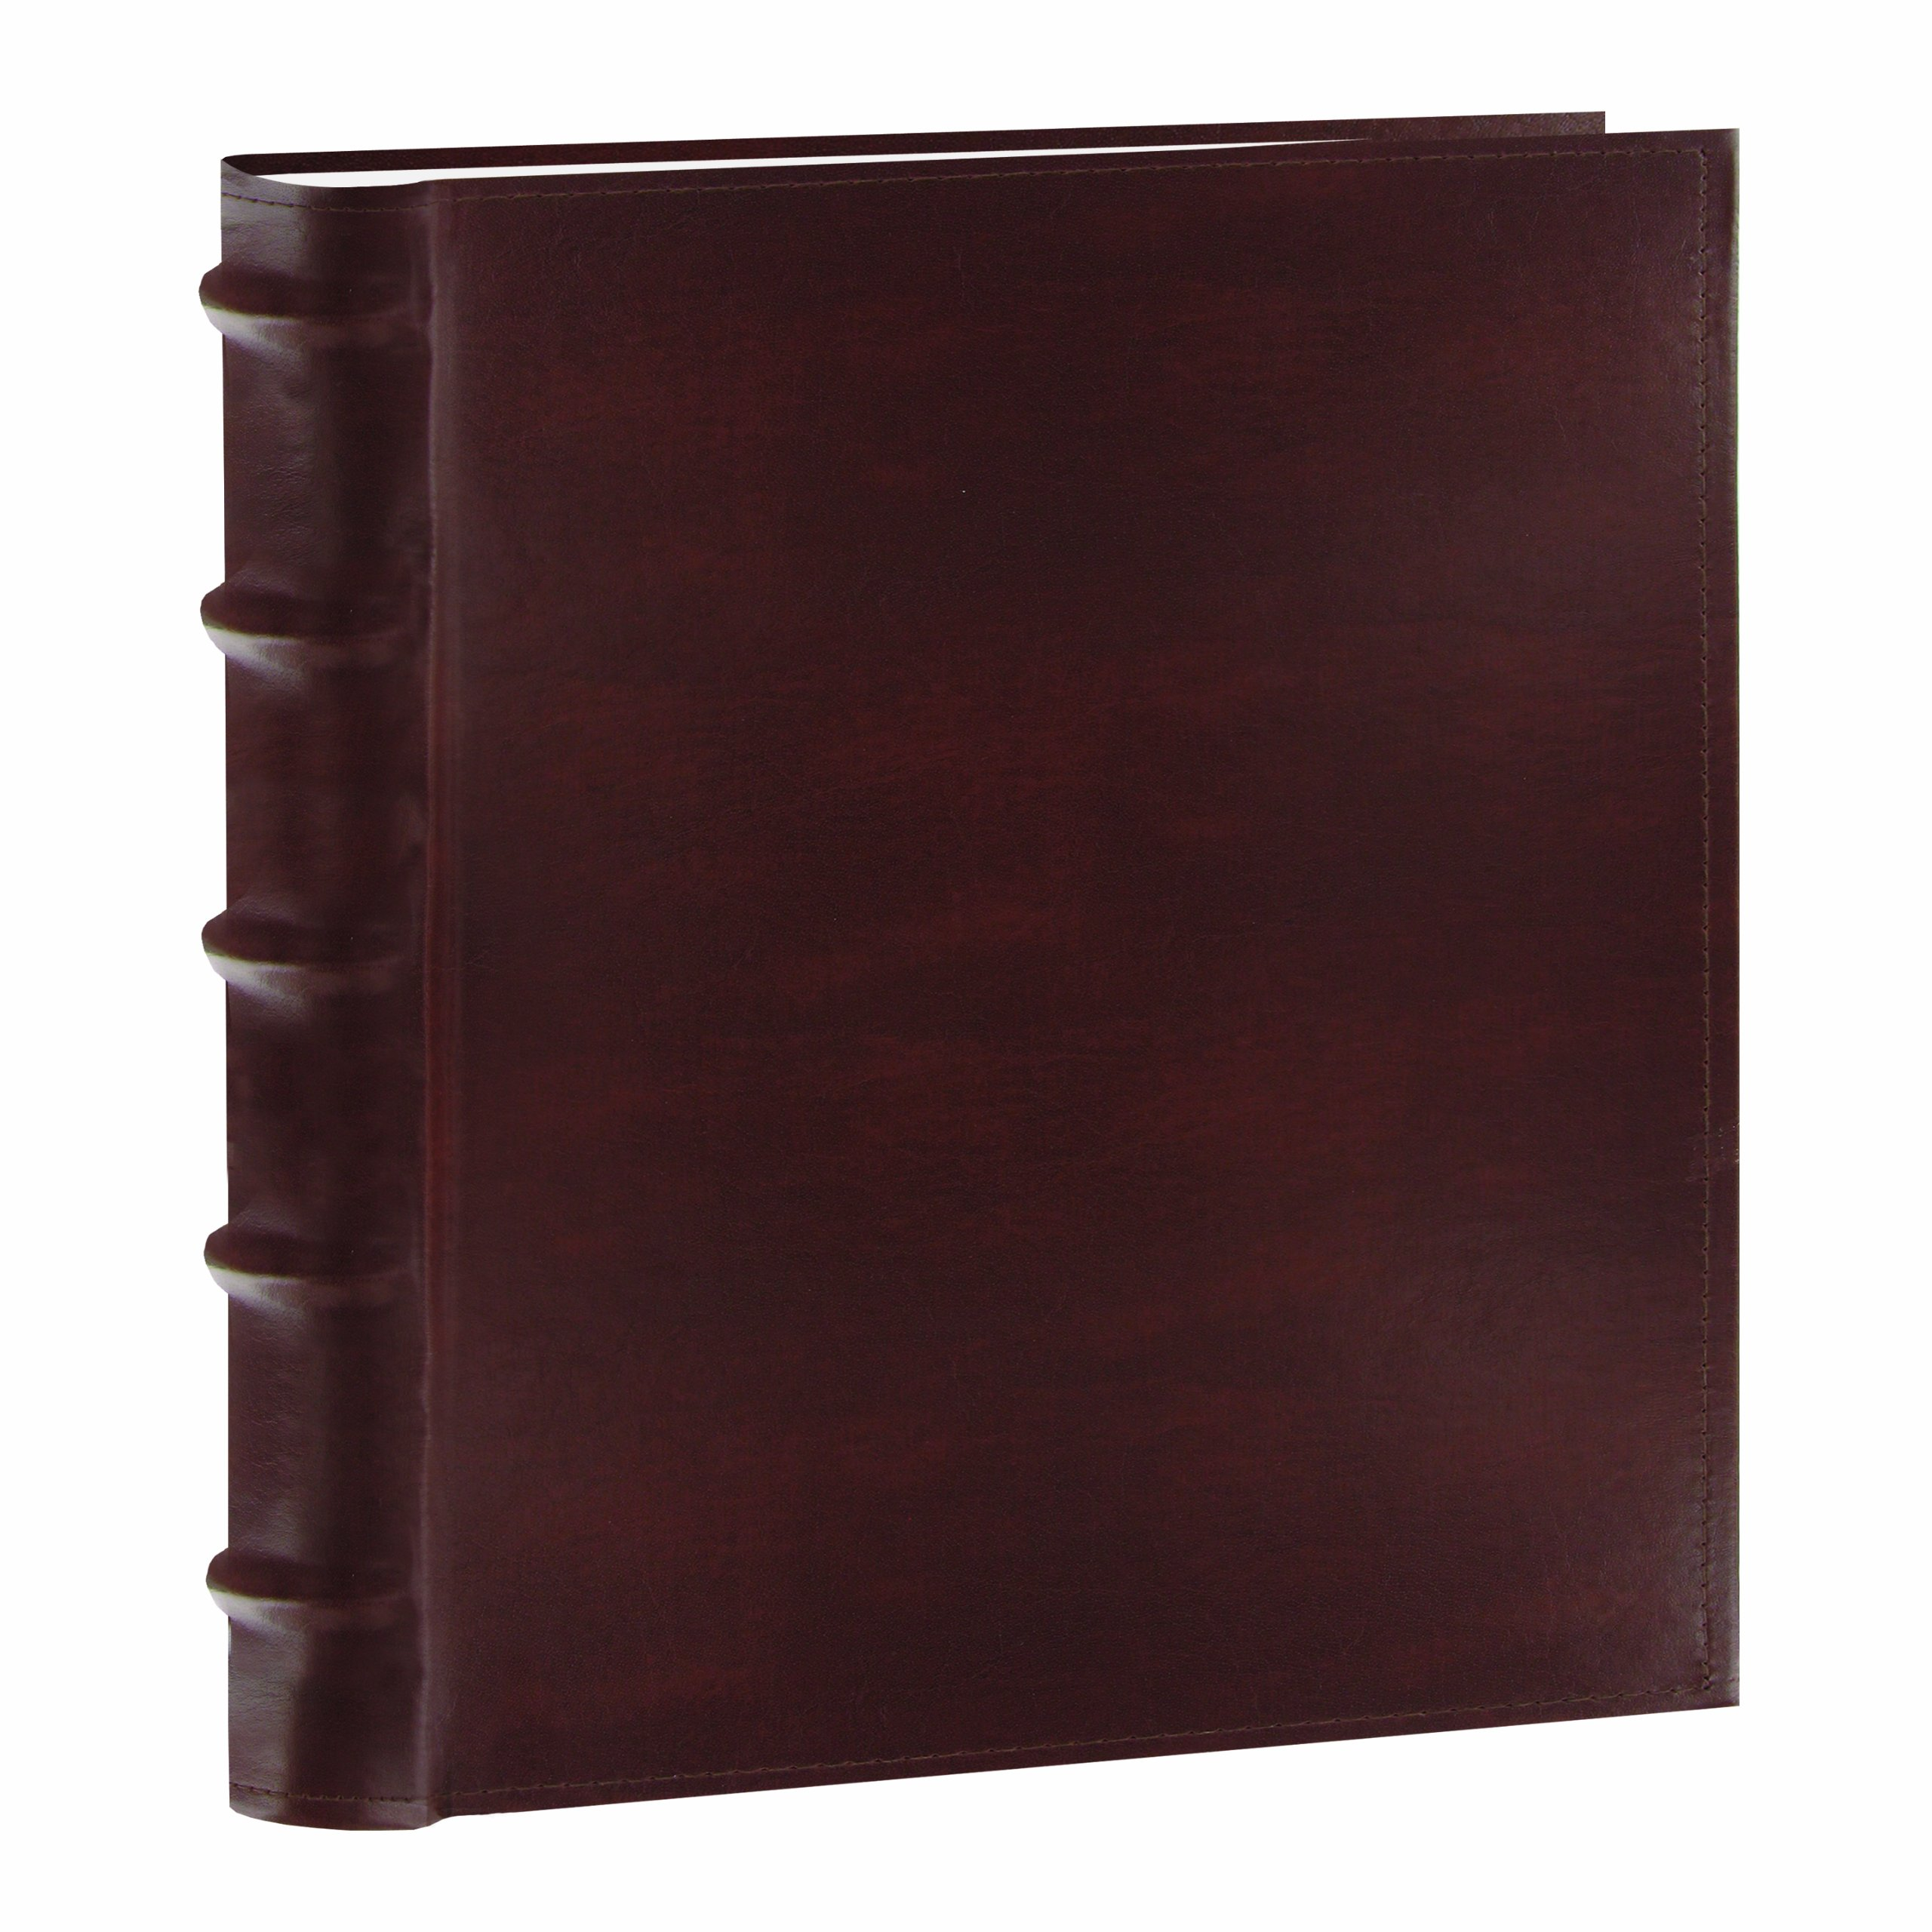 Pioneer Photo Albums CLB-246/BN 200-Pocket European Bonded Leather Photo Album for 4 by 6-Inch Prints, Brown